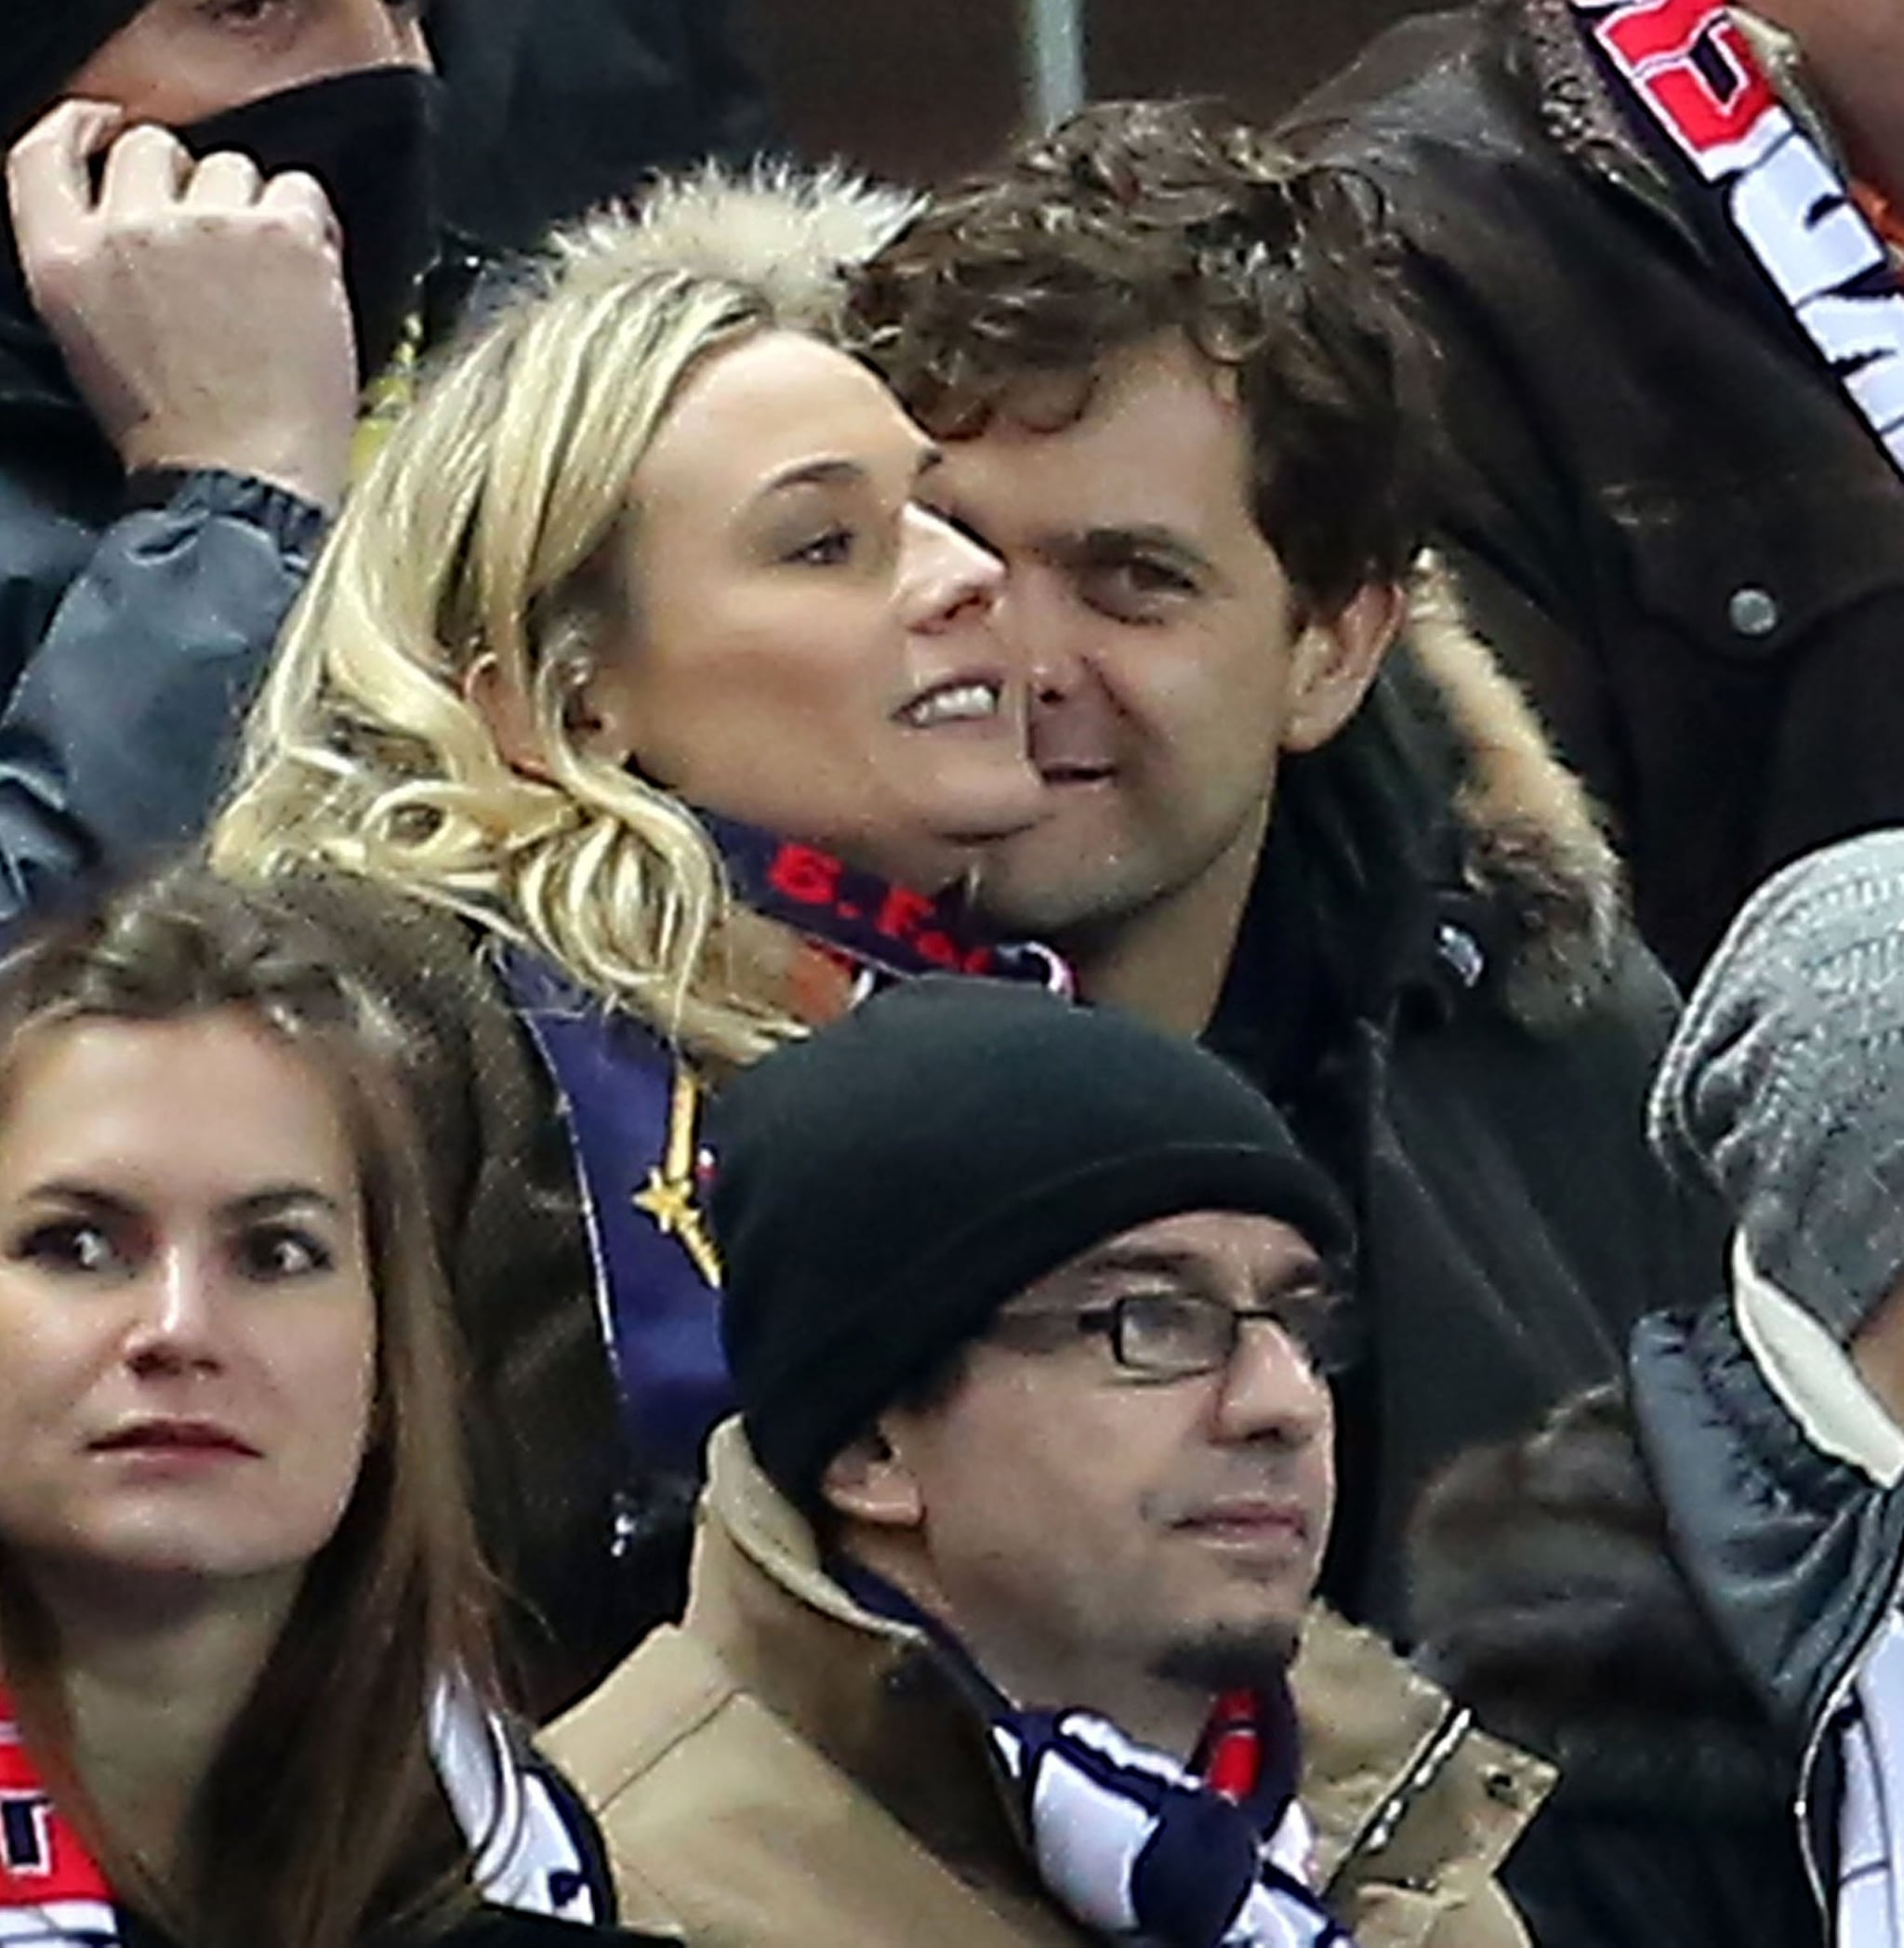 Joshua Jackson and Diane Kruger cuddled in the stands at a soccer game in Paris.